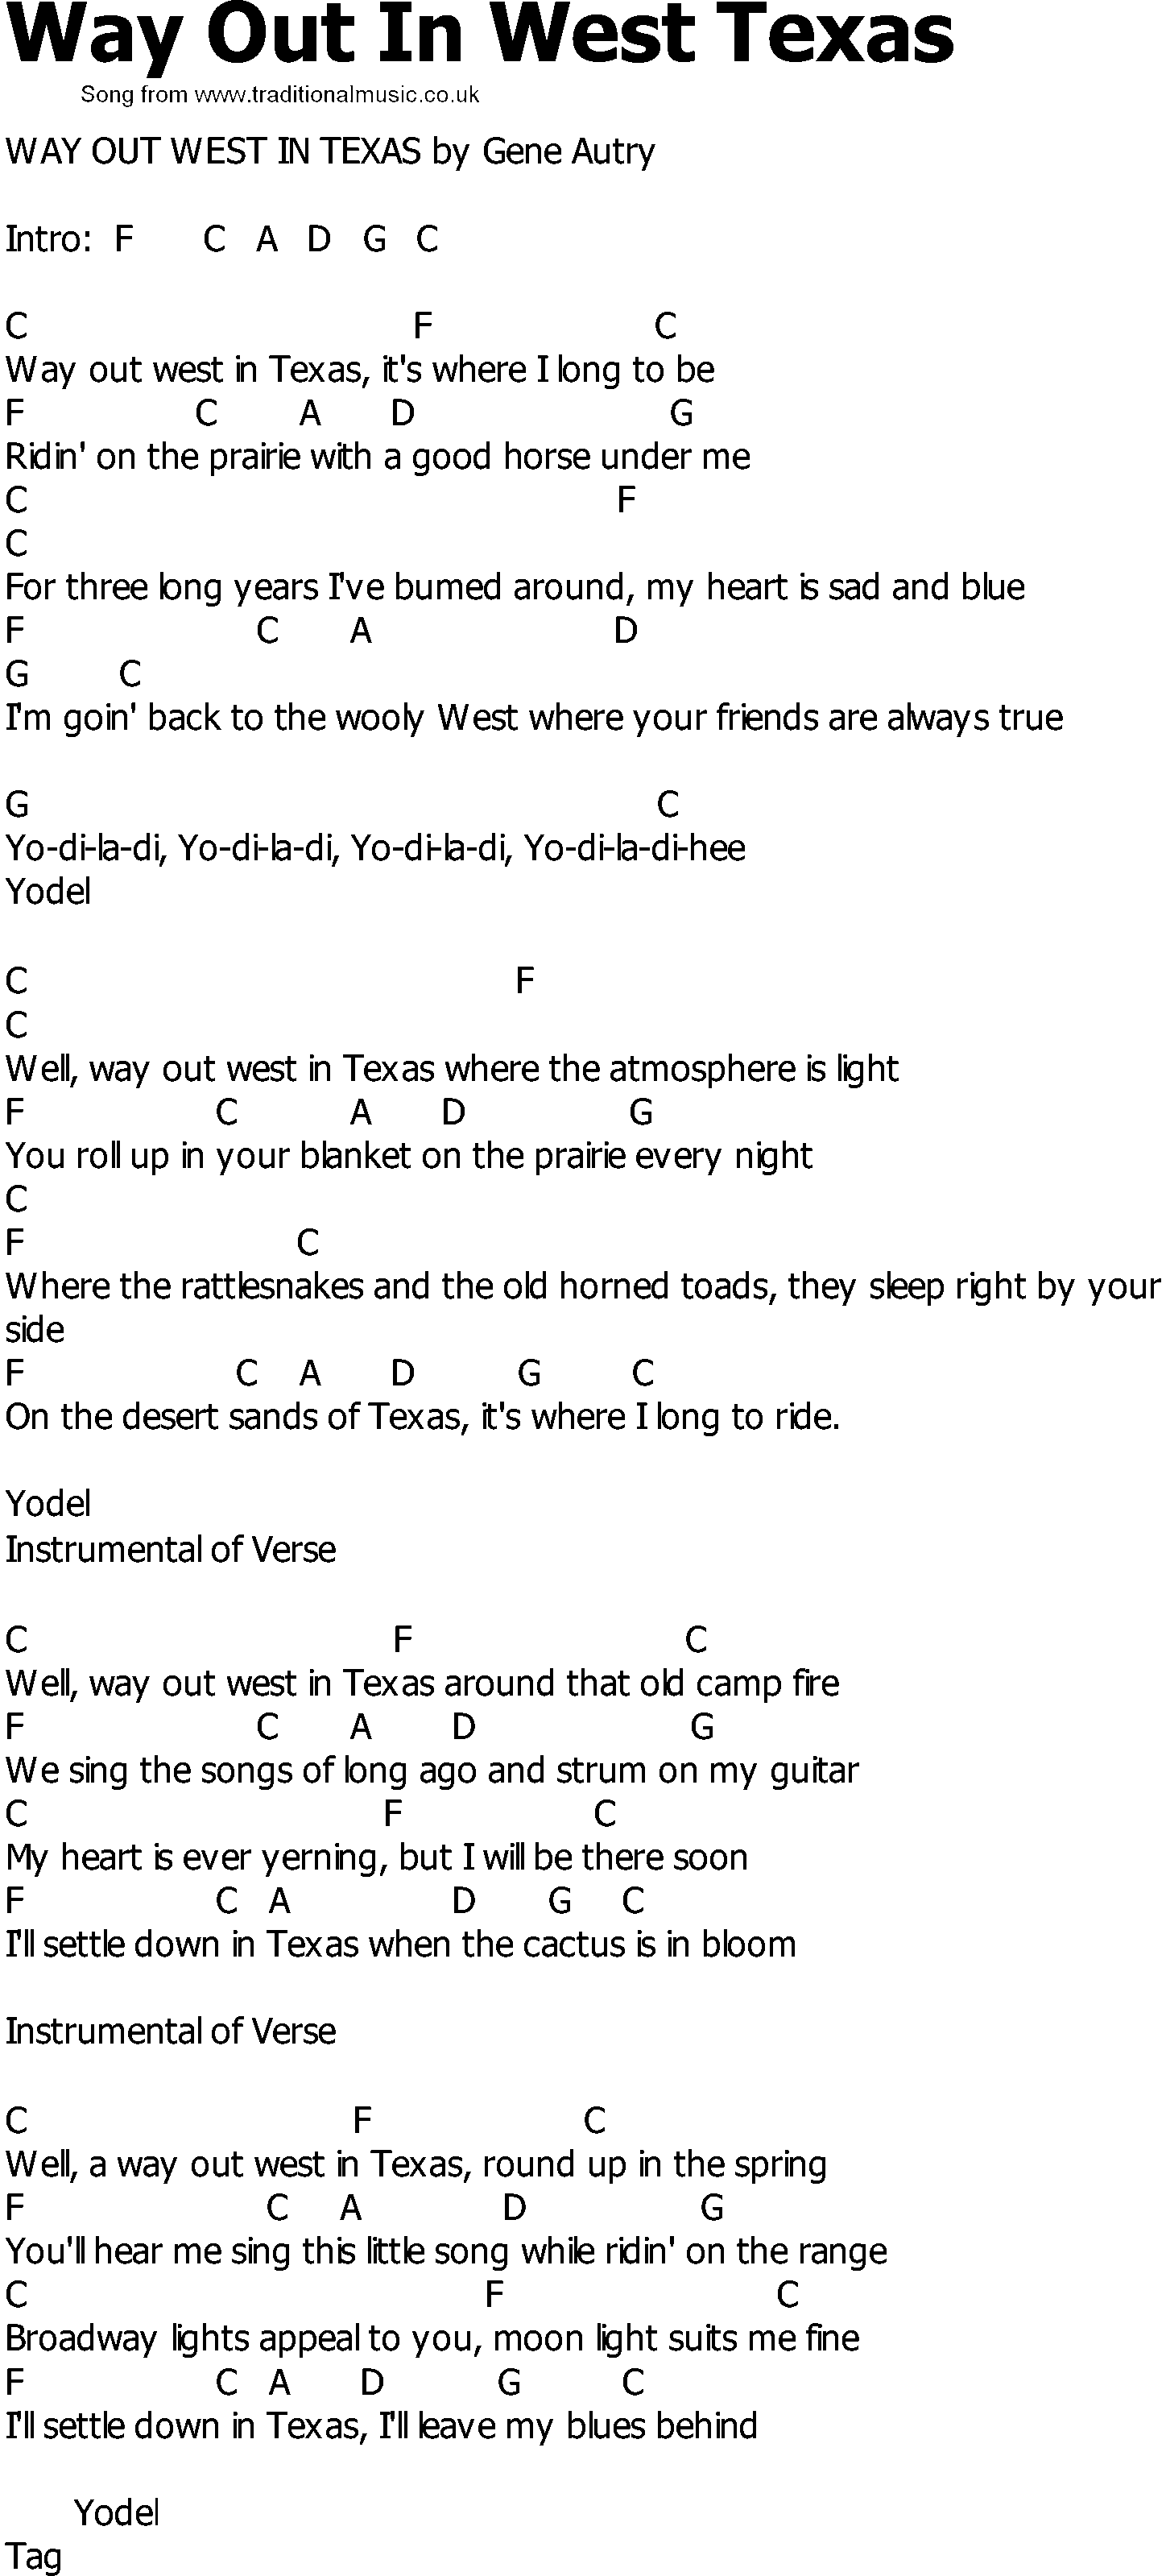 Old Country Song Lyrics With Chords Way Out In West Texas